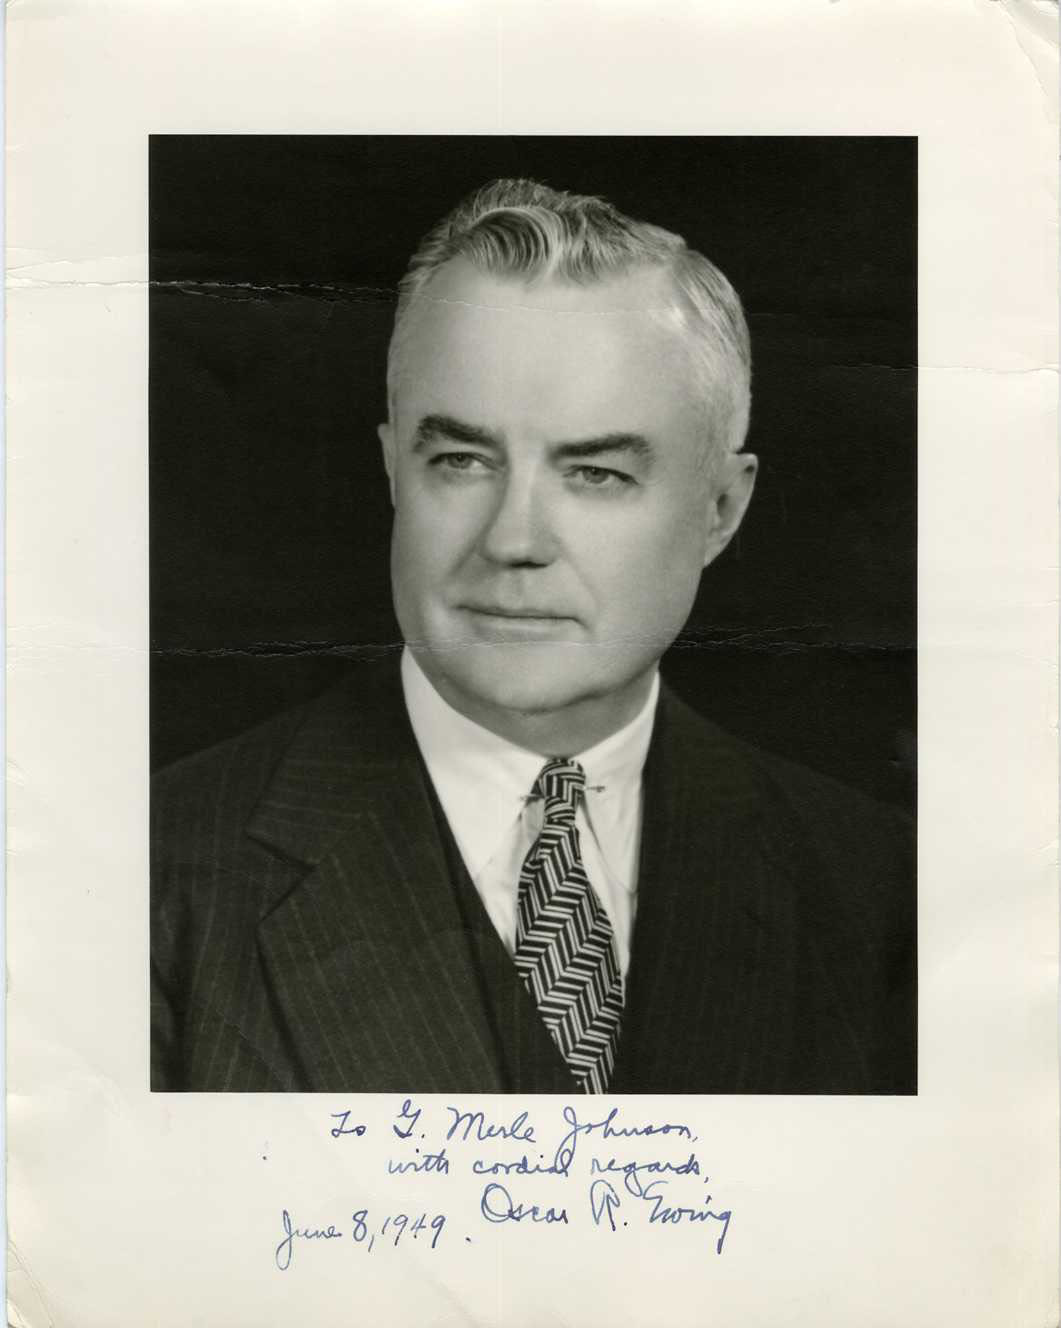 OSCAR R. EWING (FEDERAL SECURITY ADMIN.) - SIGNED POLITICAL PRINTED PHOTO (1949)